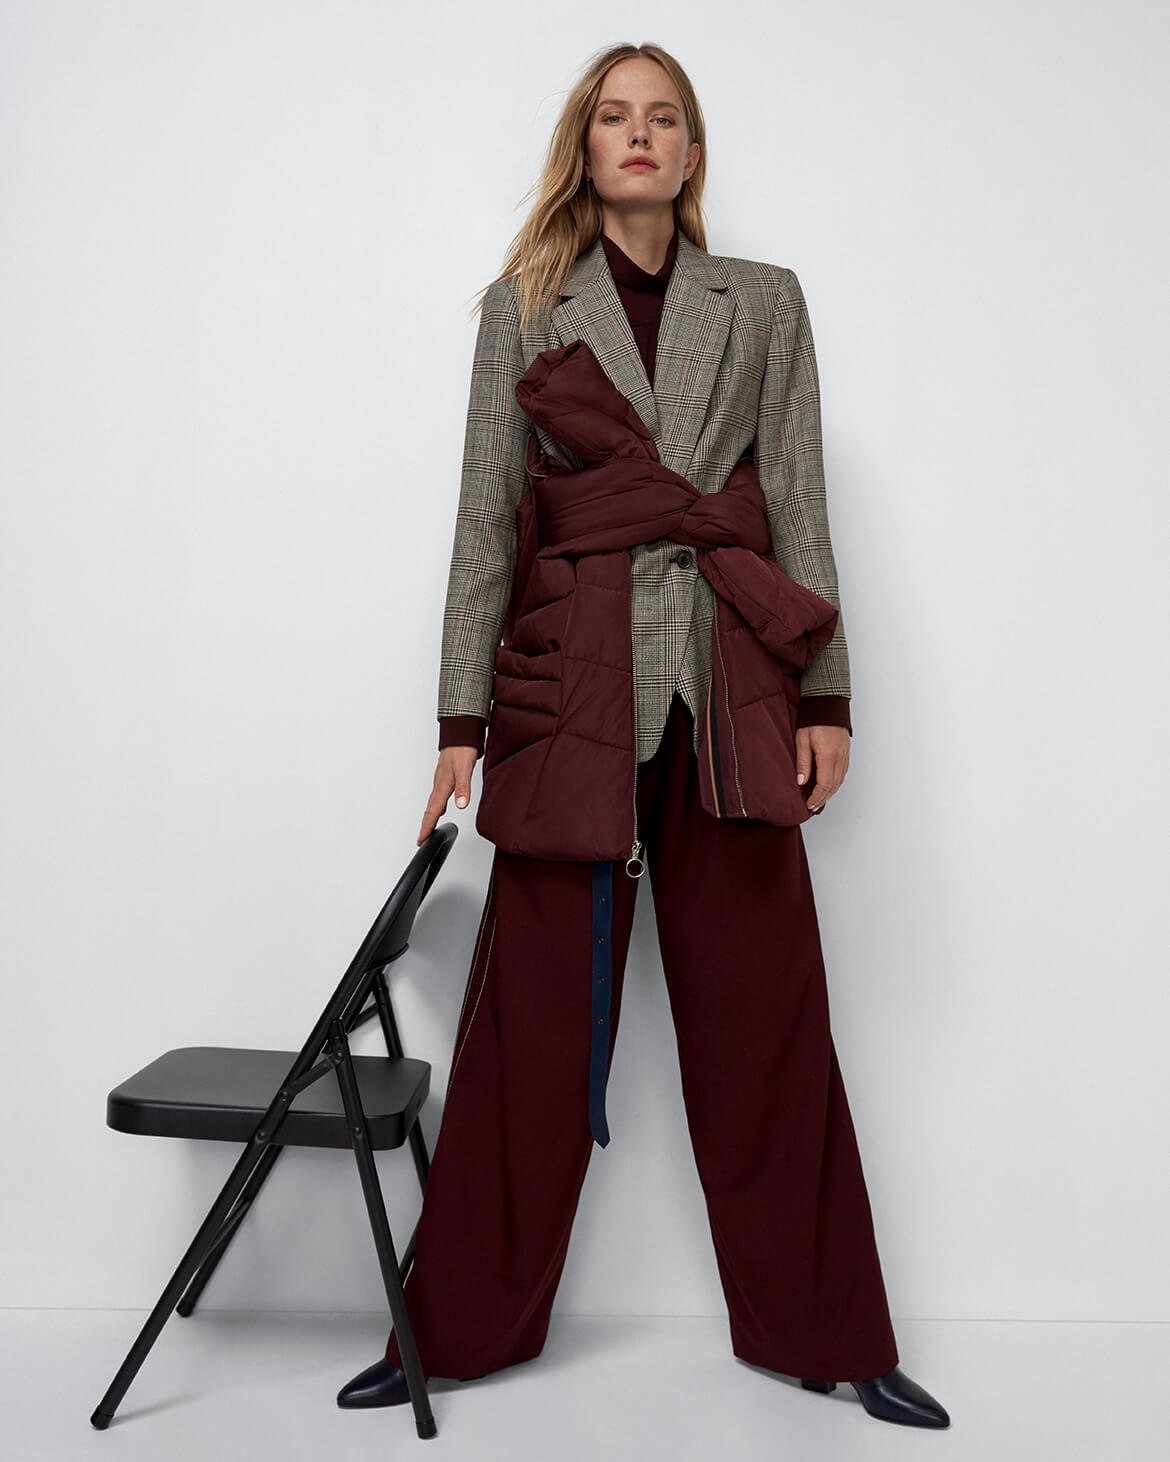 Andrew Marc Jacket and Marni Trousers